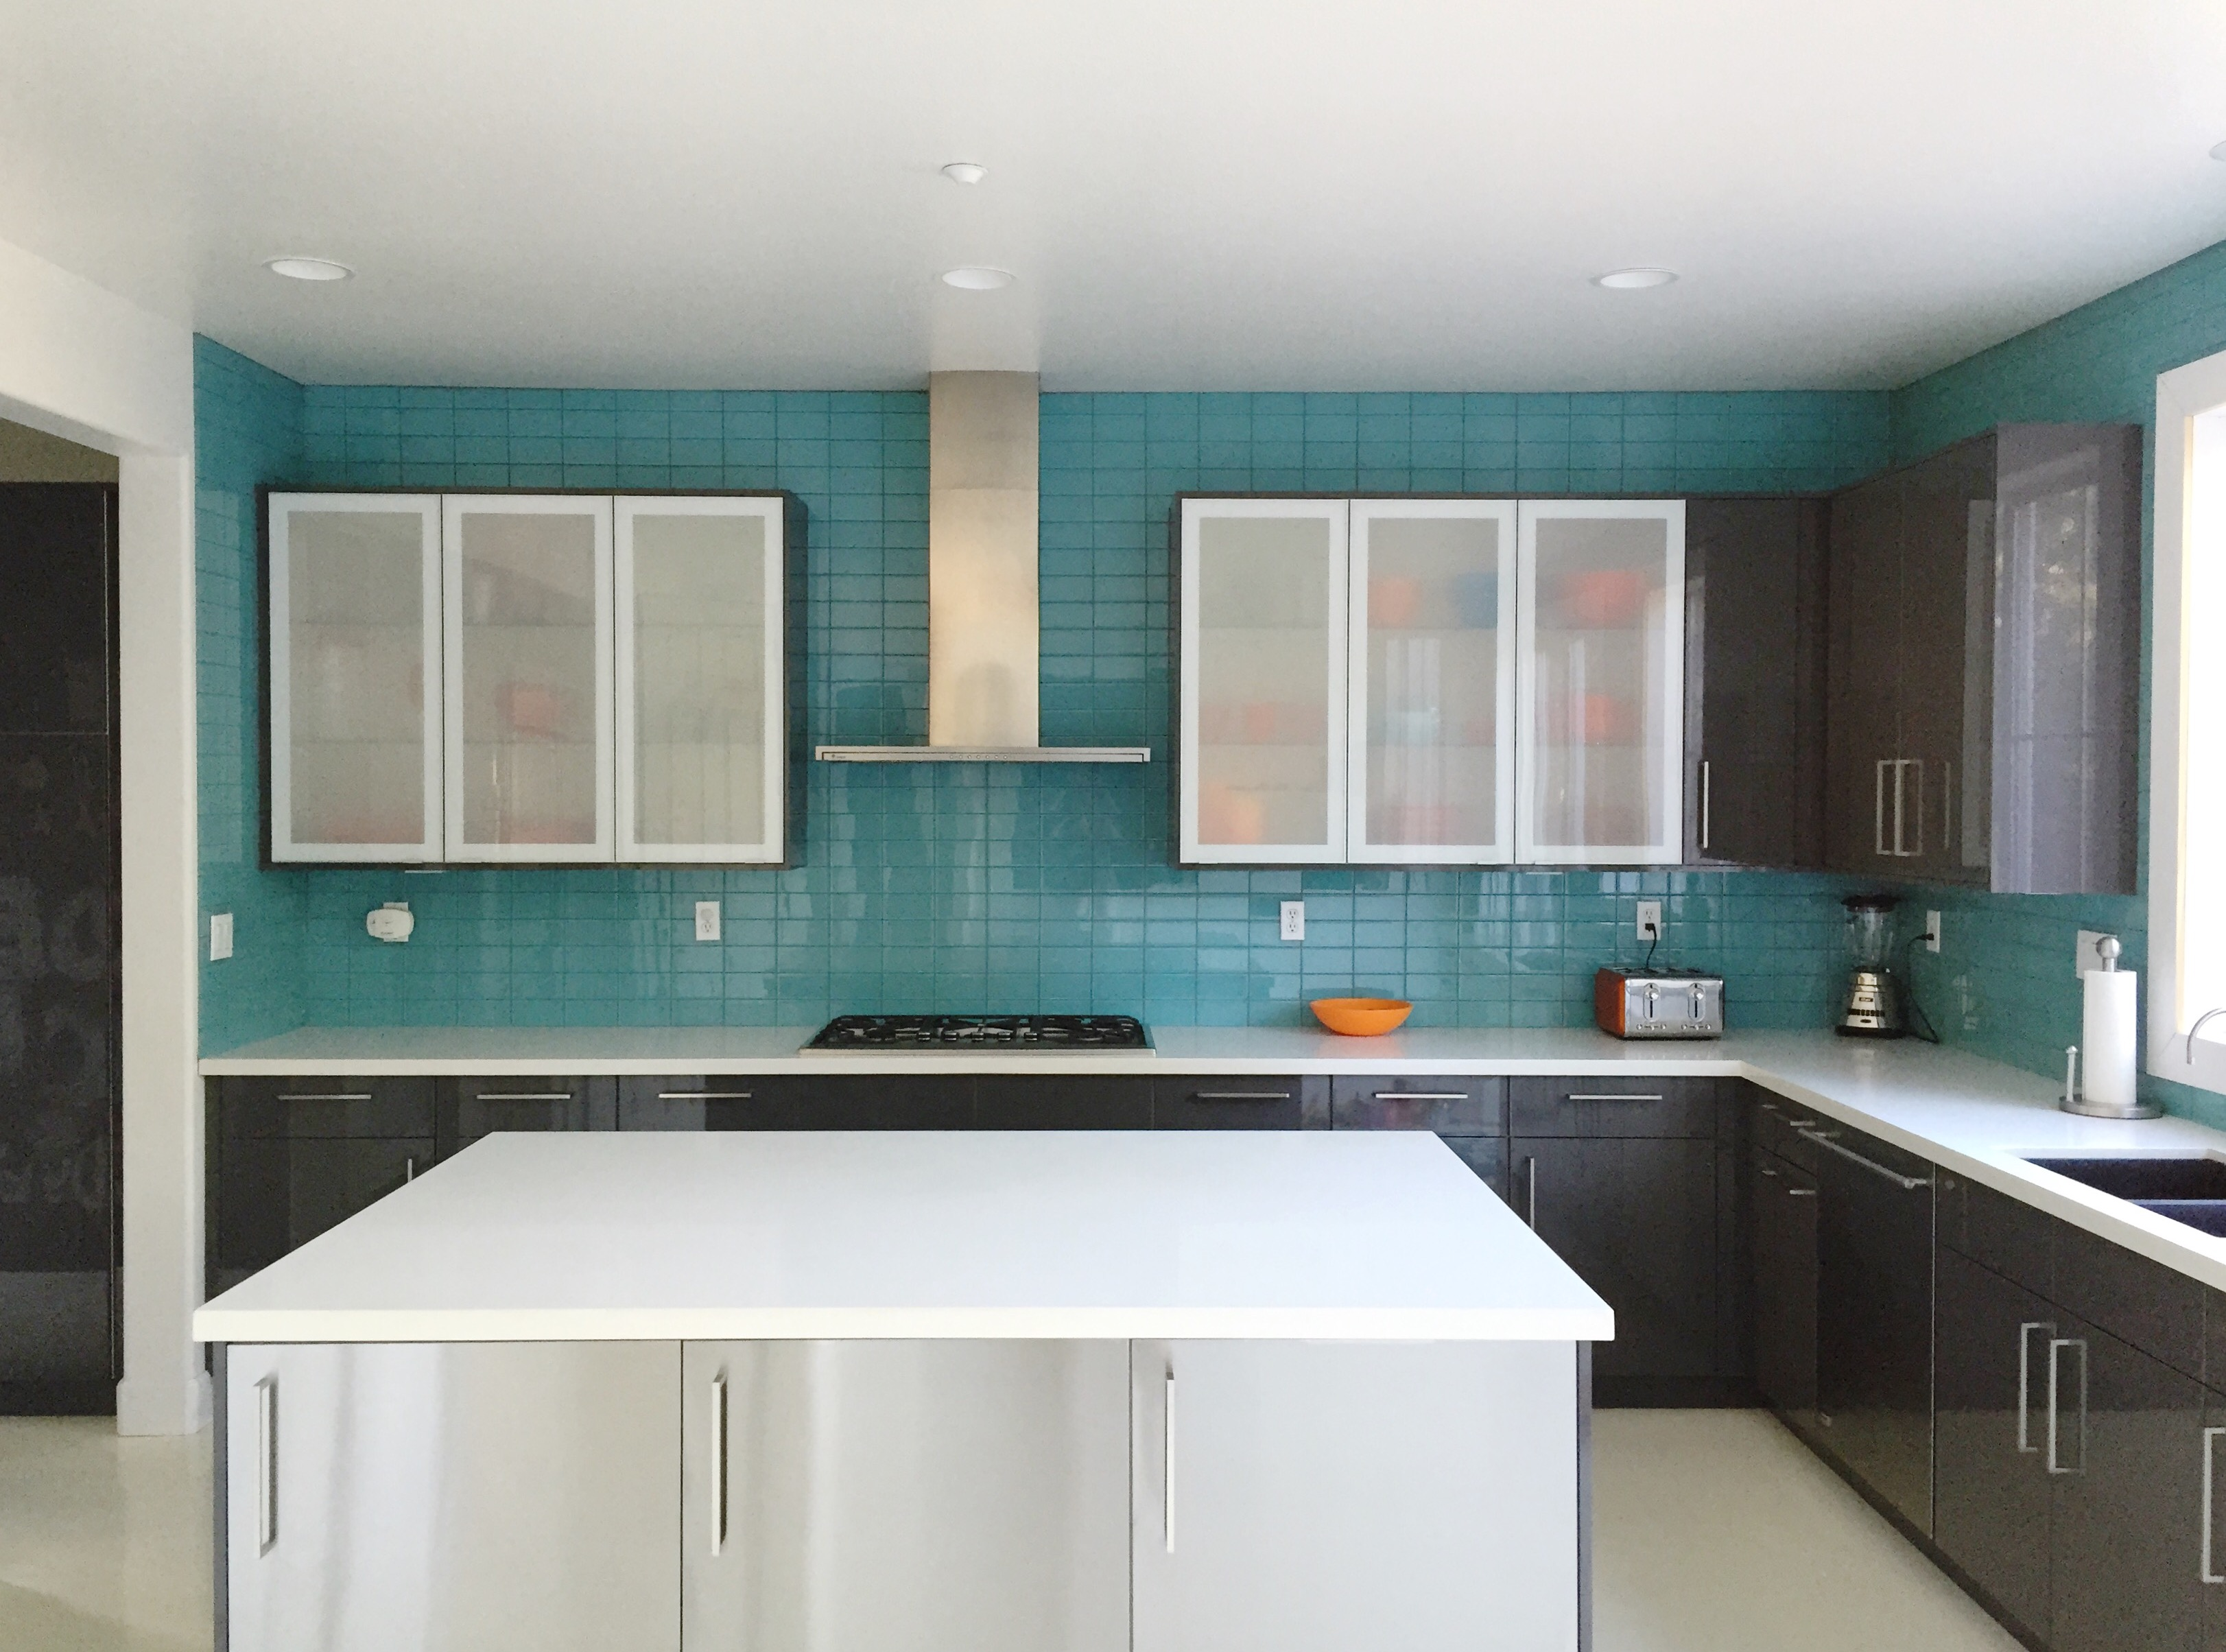 How To Install Glass Tile Backsplash Diy